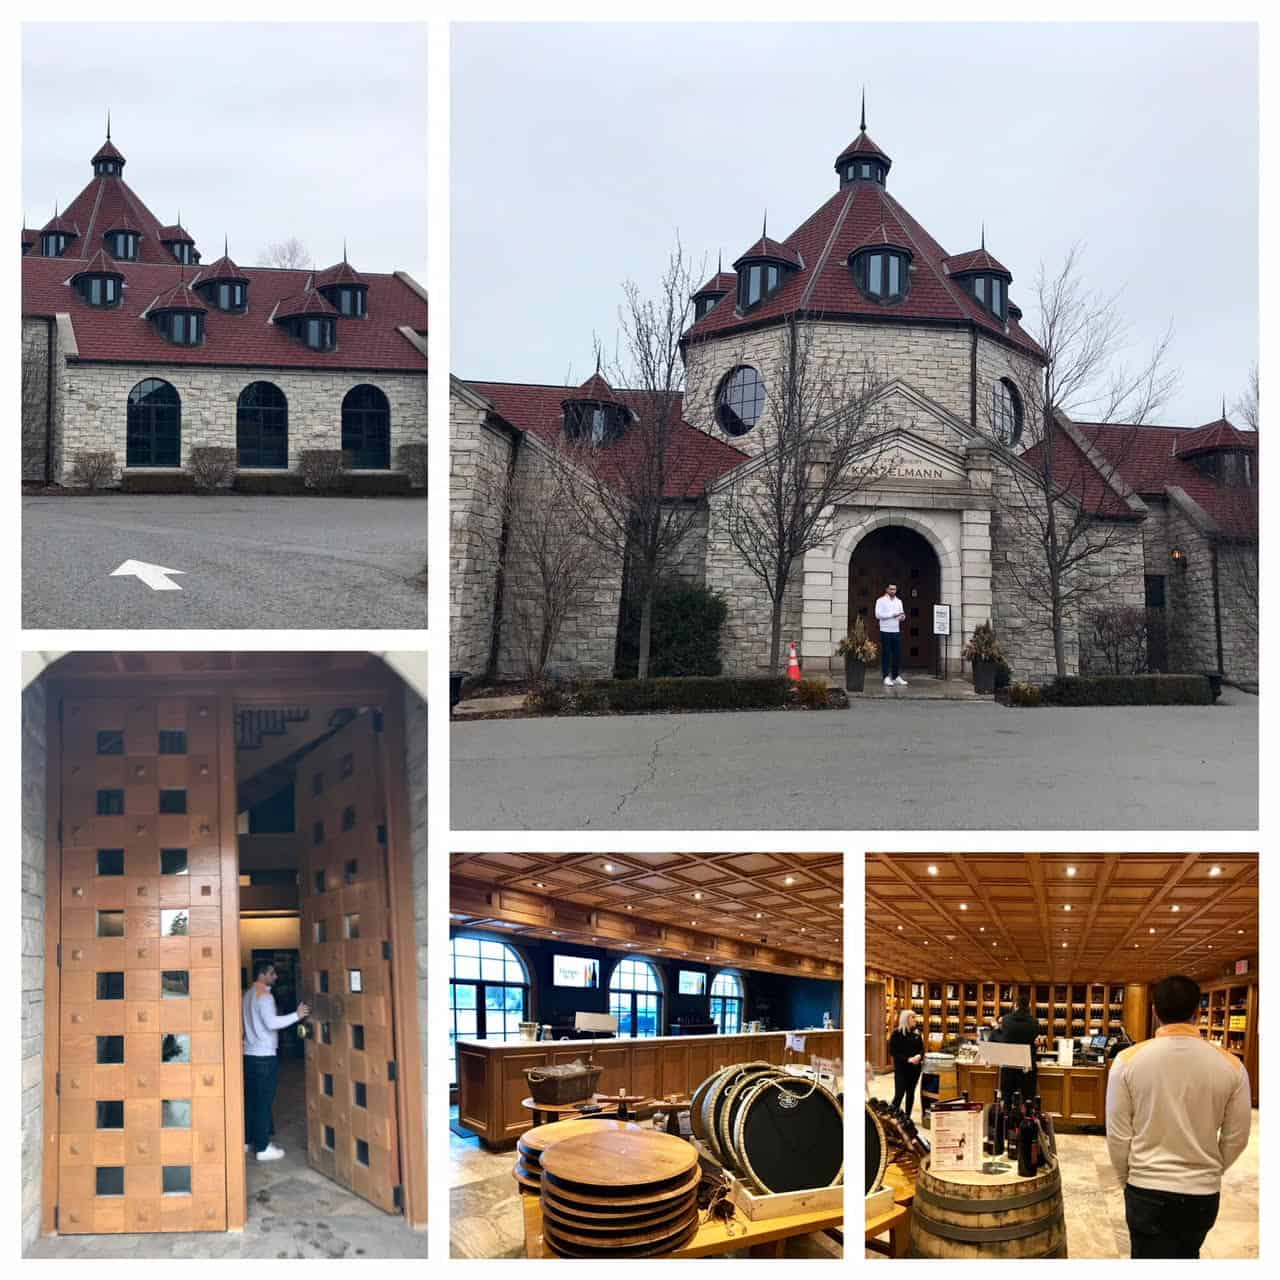 Collage of images from Konzelmann Winery